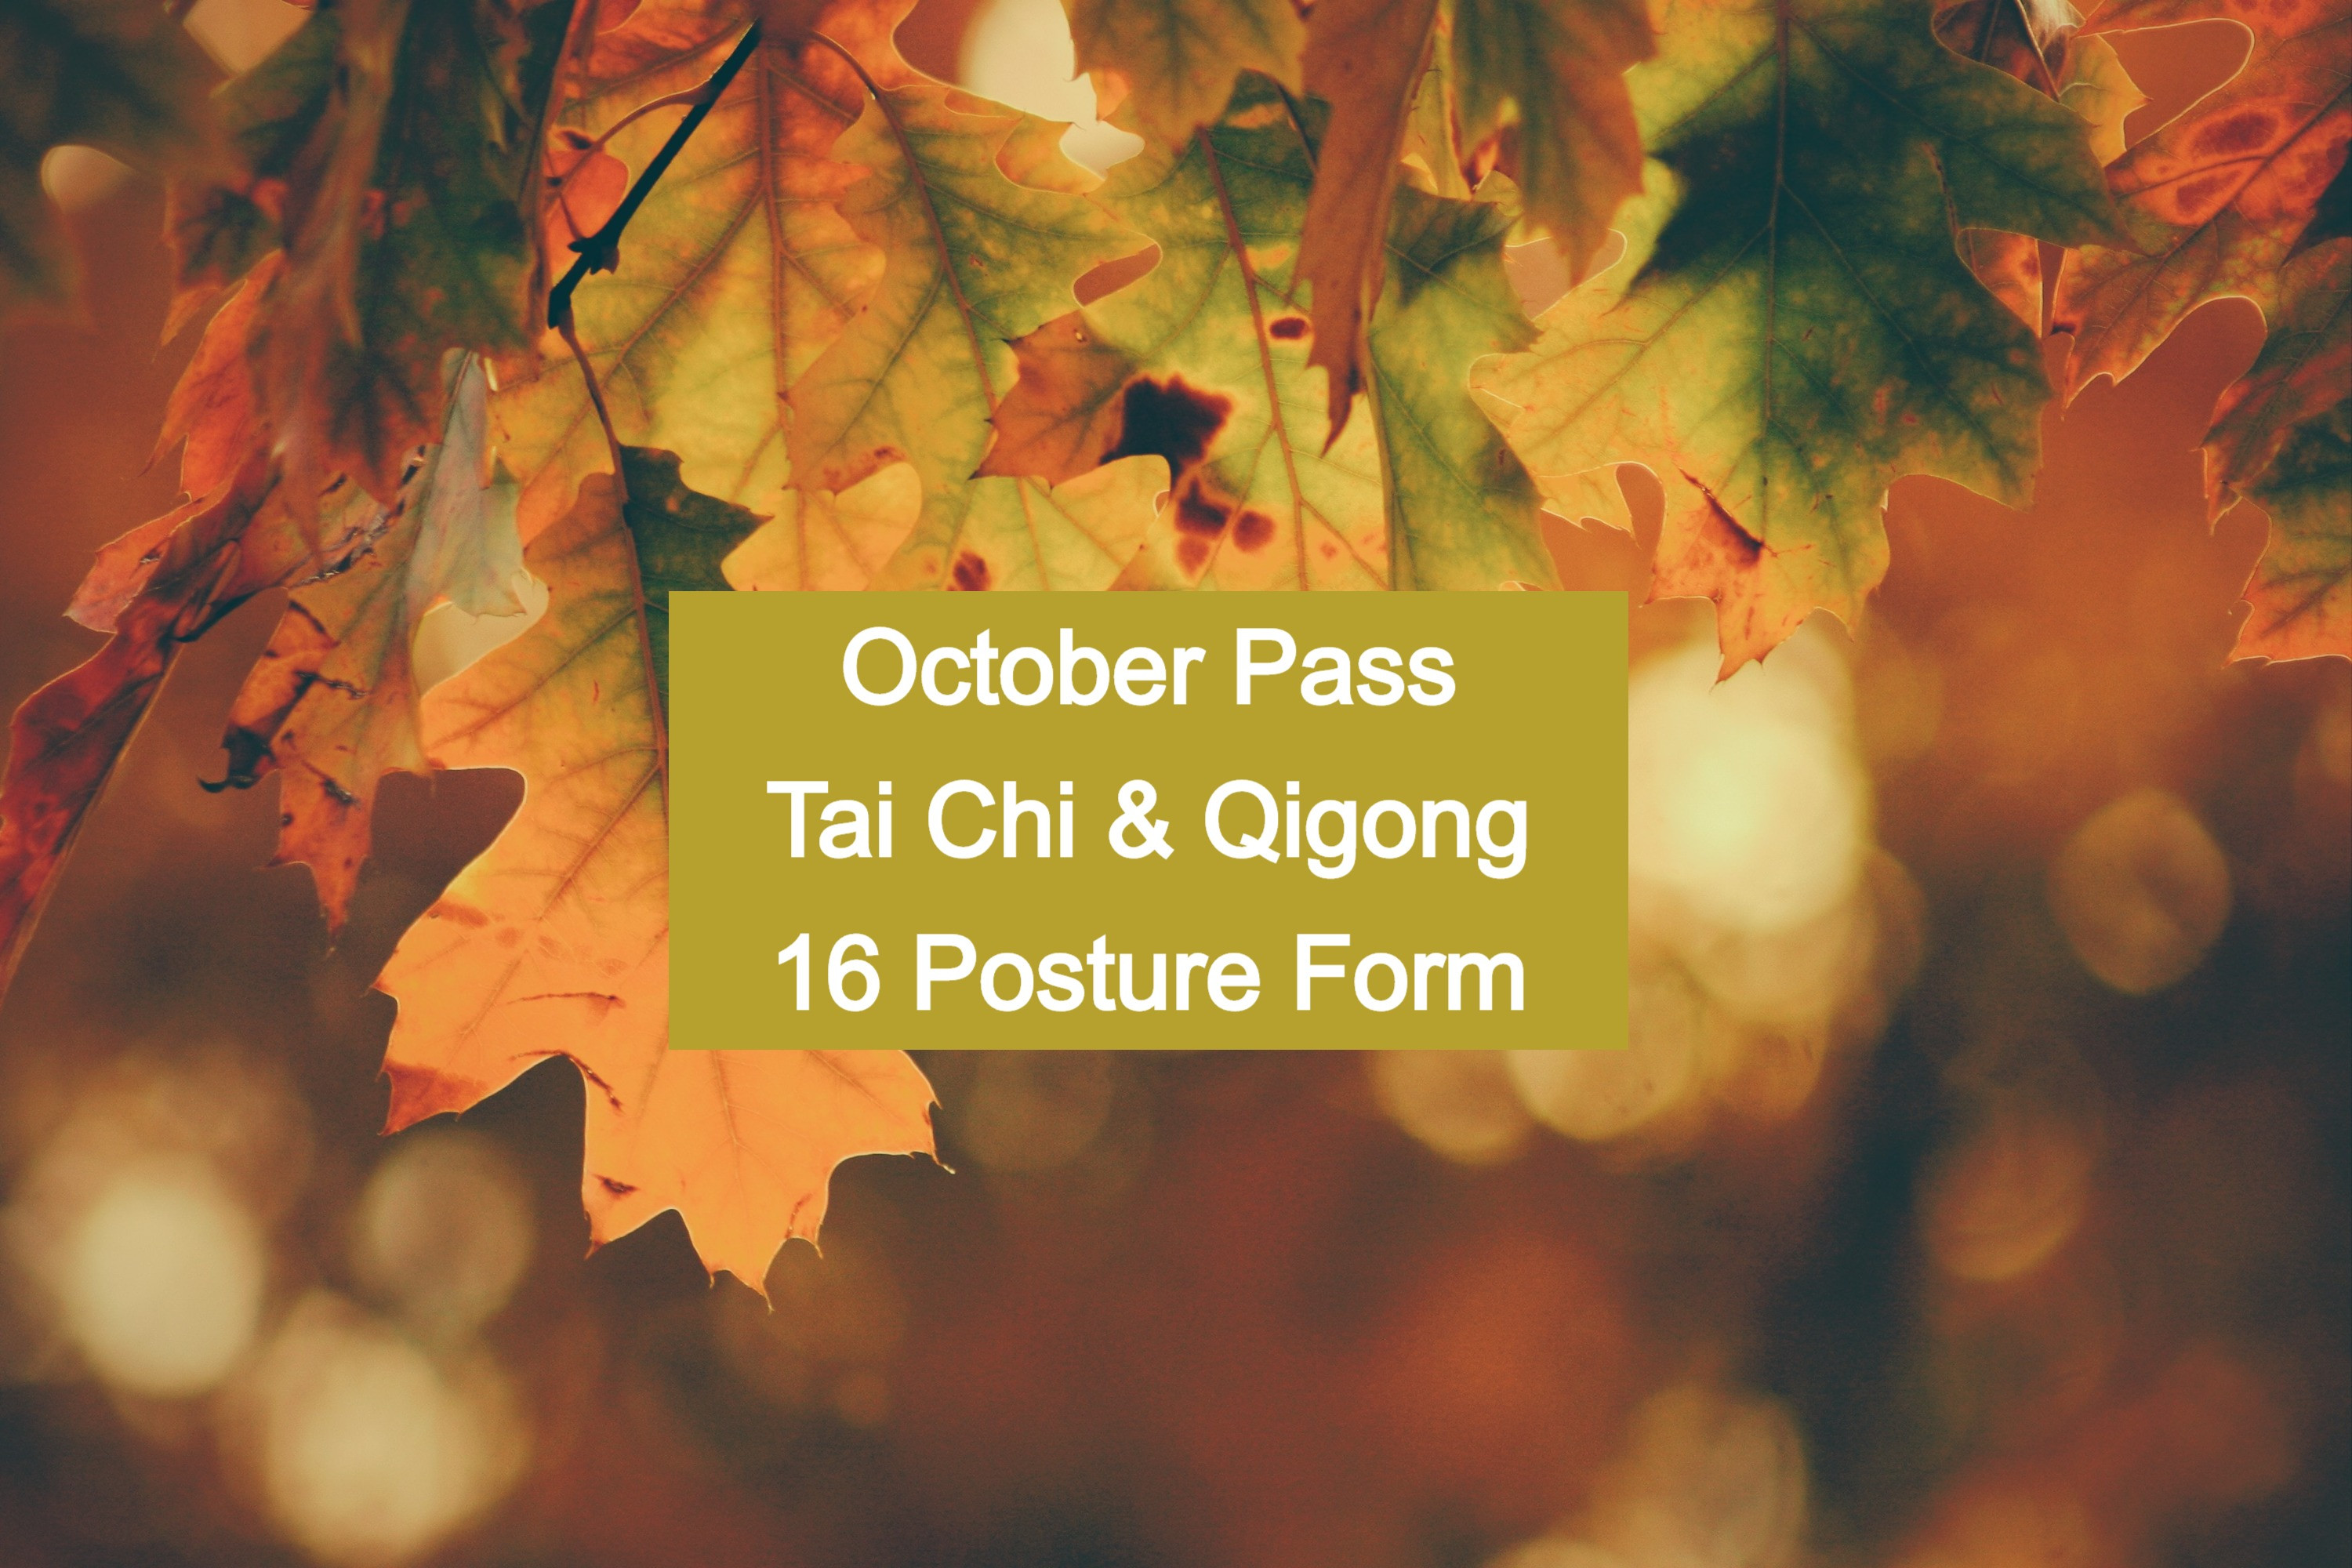 OCTOBER PASS for 16 Posture Classes